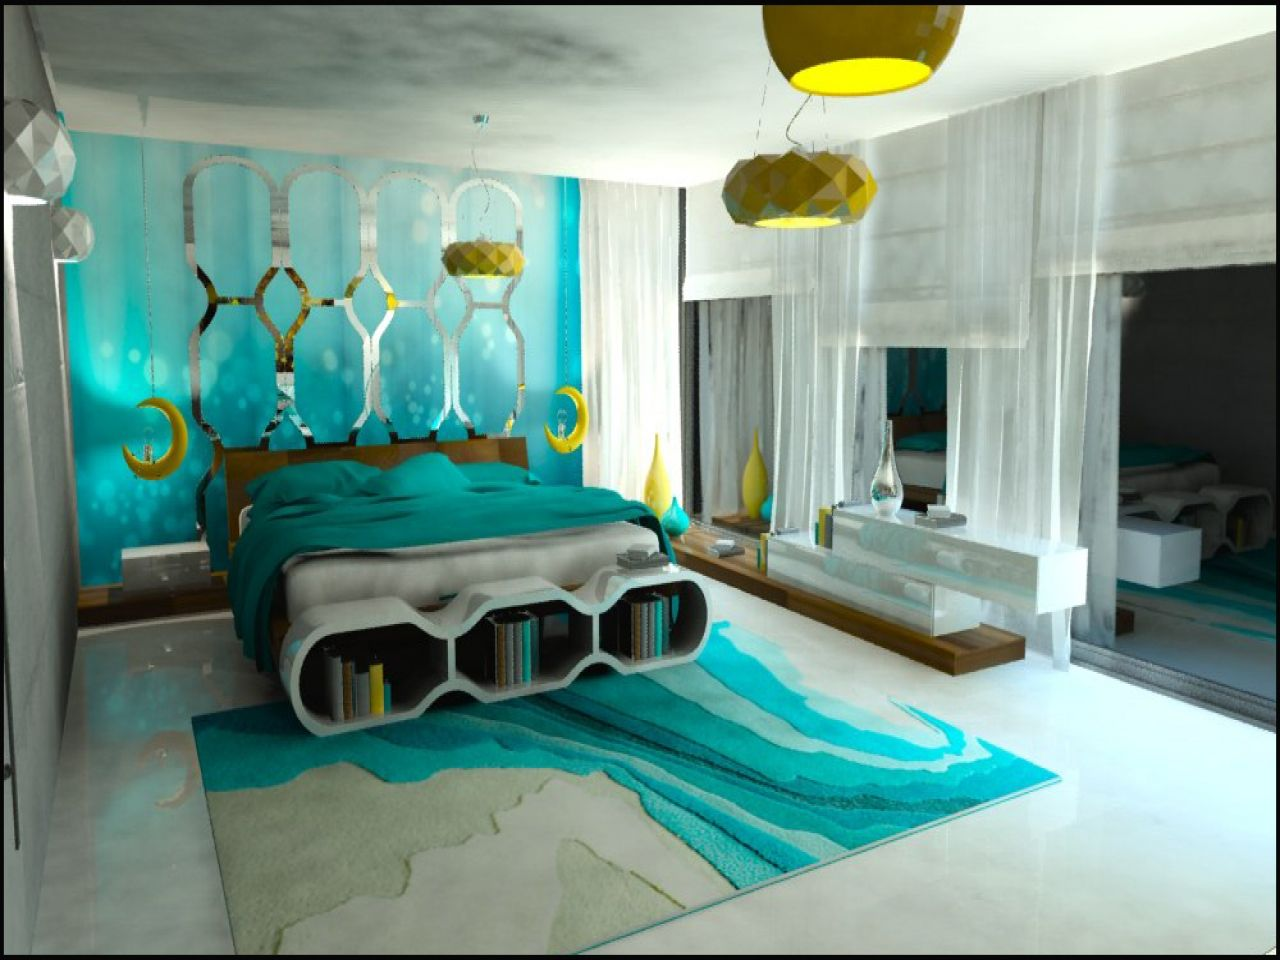 Exceptionnel Turquoise Room Decorations U2013 Aqua Exoticness Ideas And Inspirations Tags:  Turquoise Room, Turquoise Room Decor, Turquoise Bedroom Ideas, Turquoise  Living ...